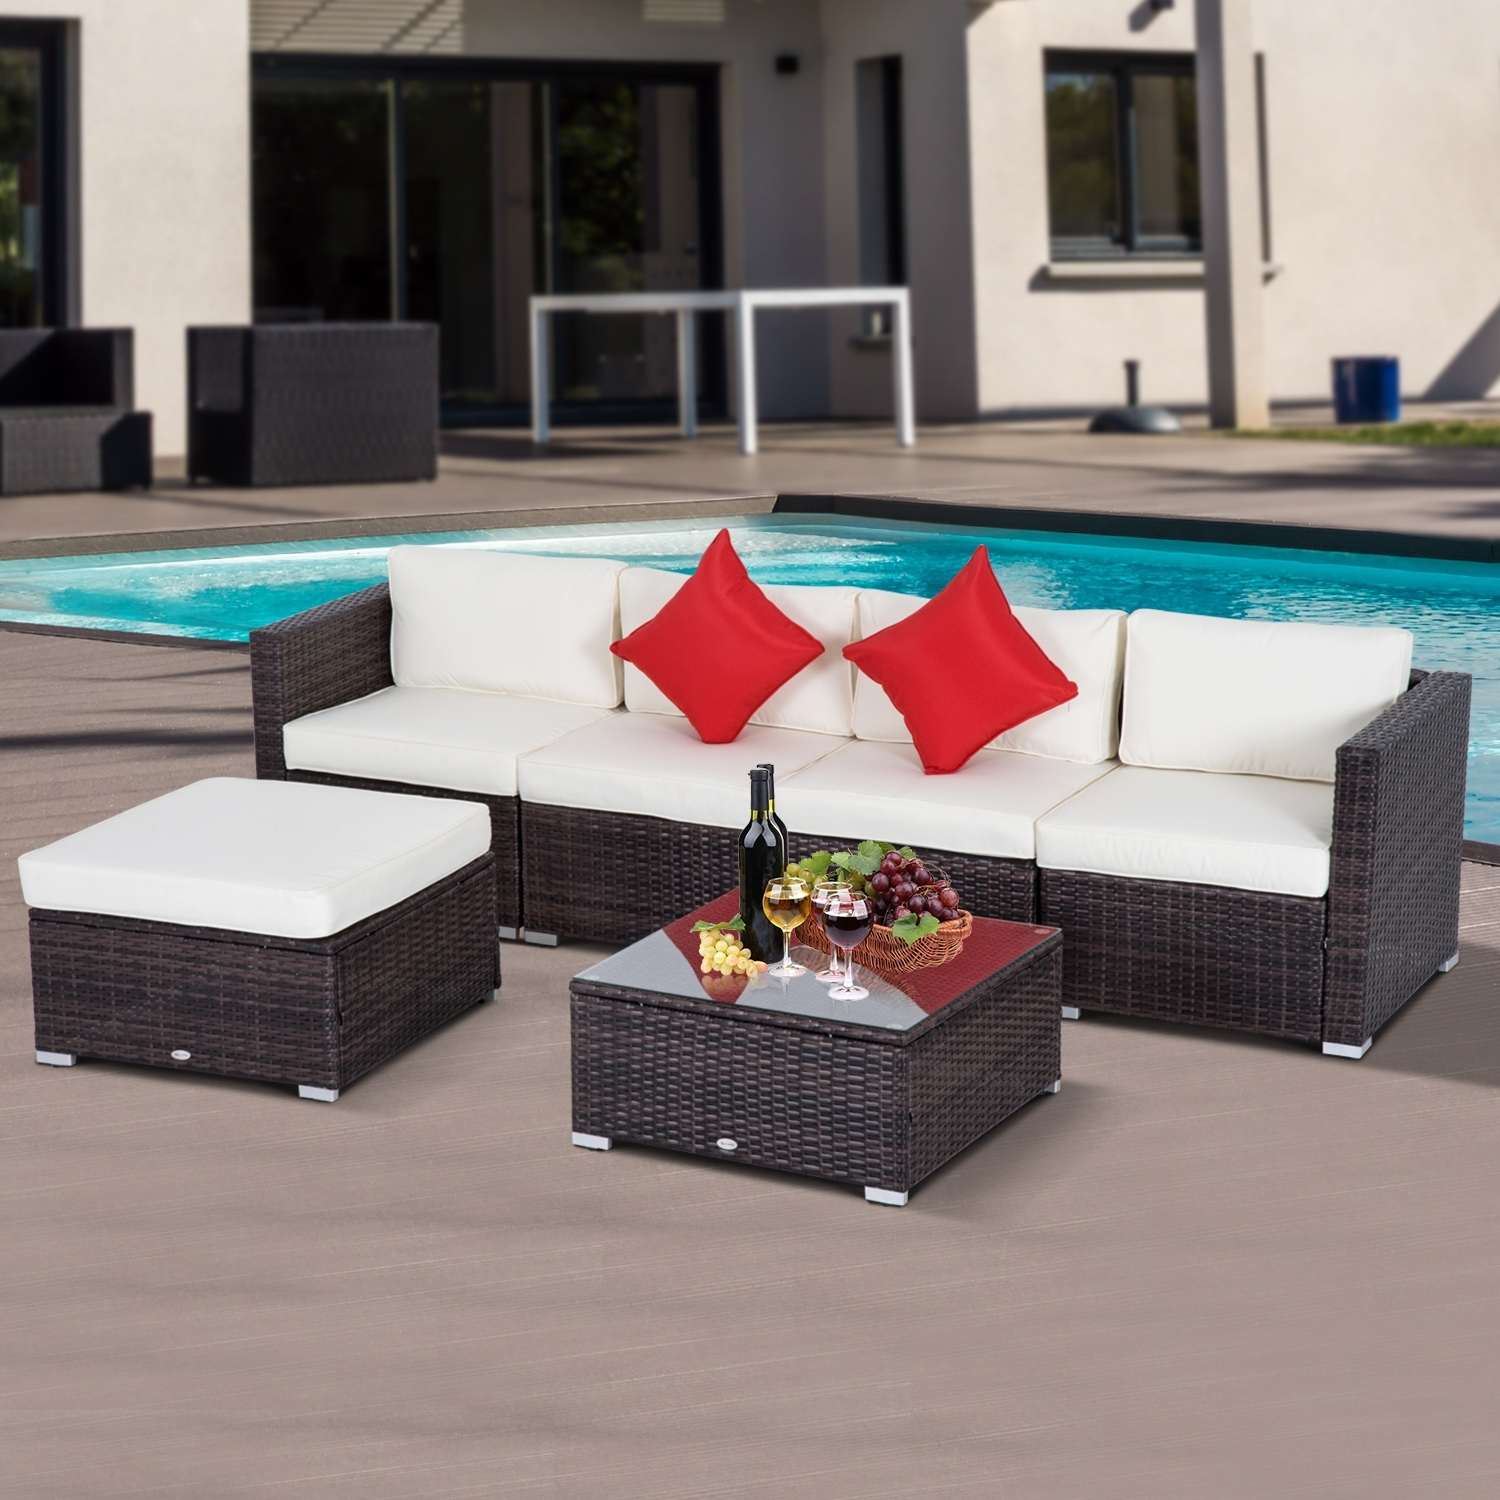 Outsunny 6Pc Rattan Wicker Patio Sofa Set Sectional Garden Yard Within Marius Dark Grey 3 Piece Sectionals (Image 21 of 25)